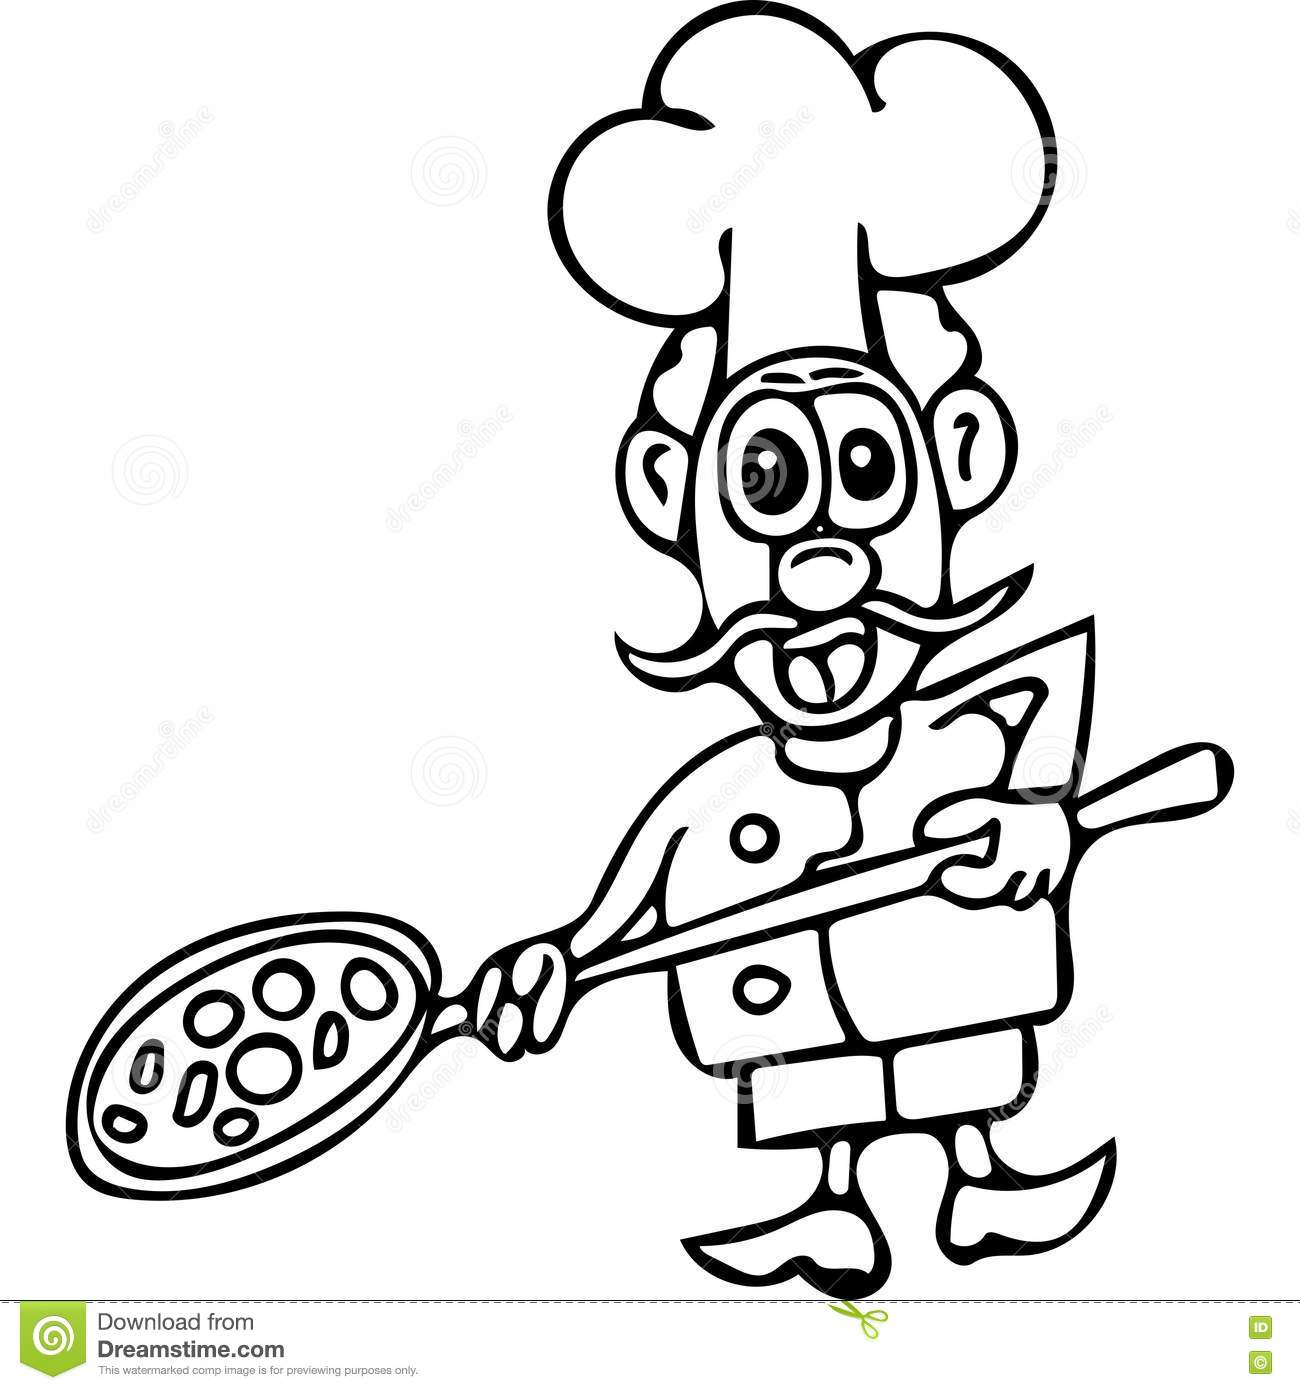 Funny Pizza Cook Coloring Pages Stock Illustration - Illustration of ...